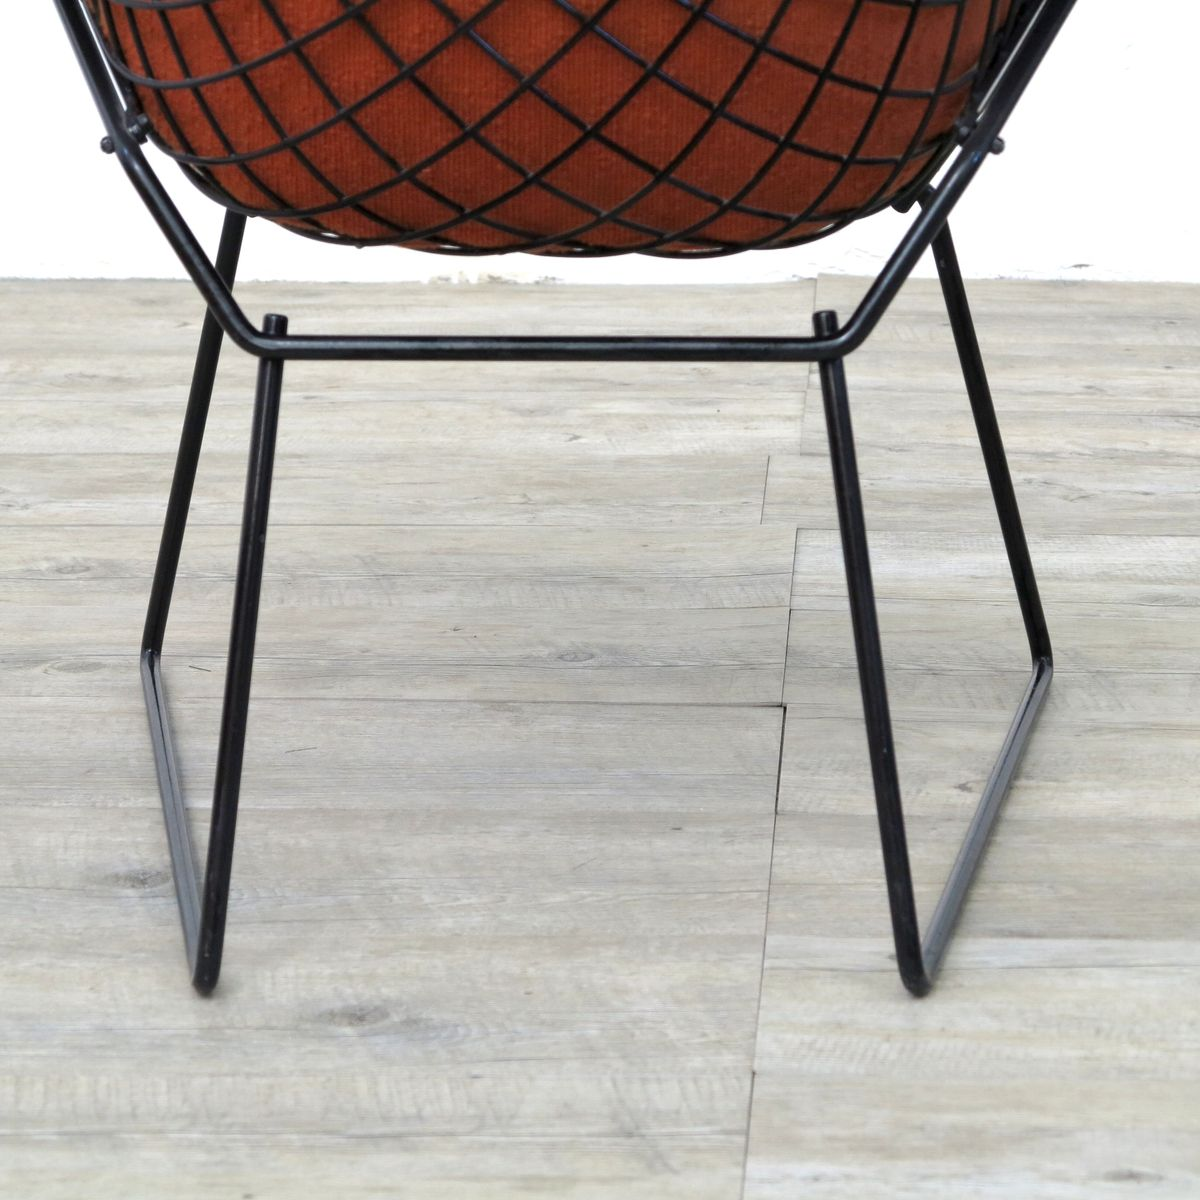 Bertoia diamond chair vintage - Vintage Diamond Chair By Harry Bertoia For Knoll 1970s 13 1 989 00 Price Per Piece